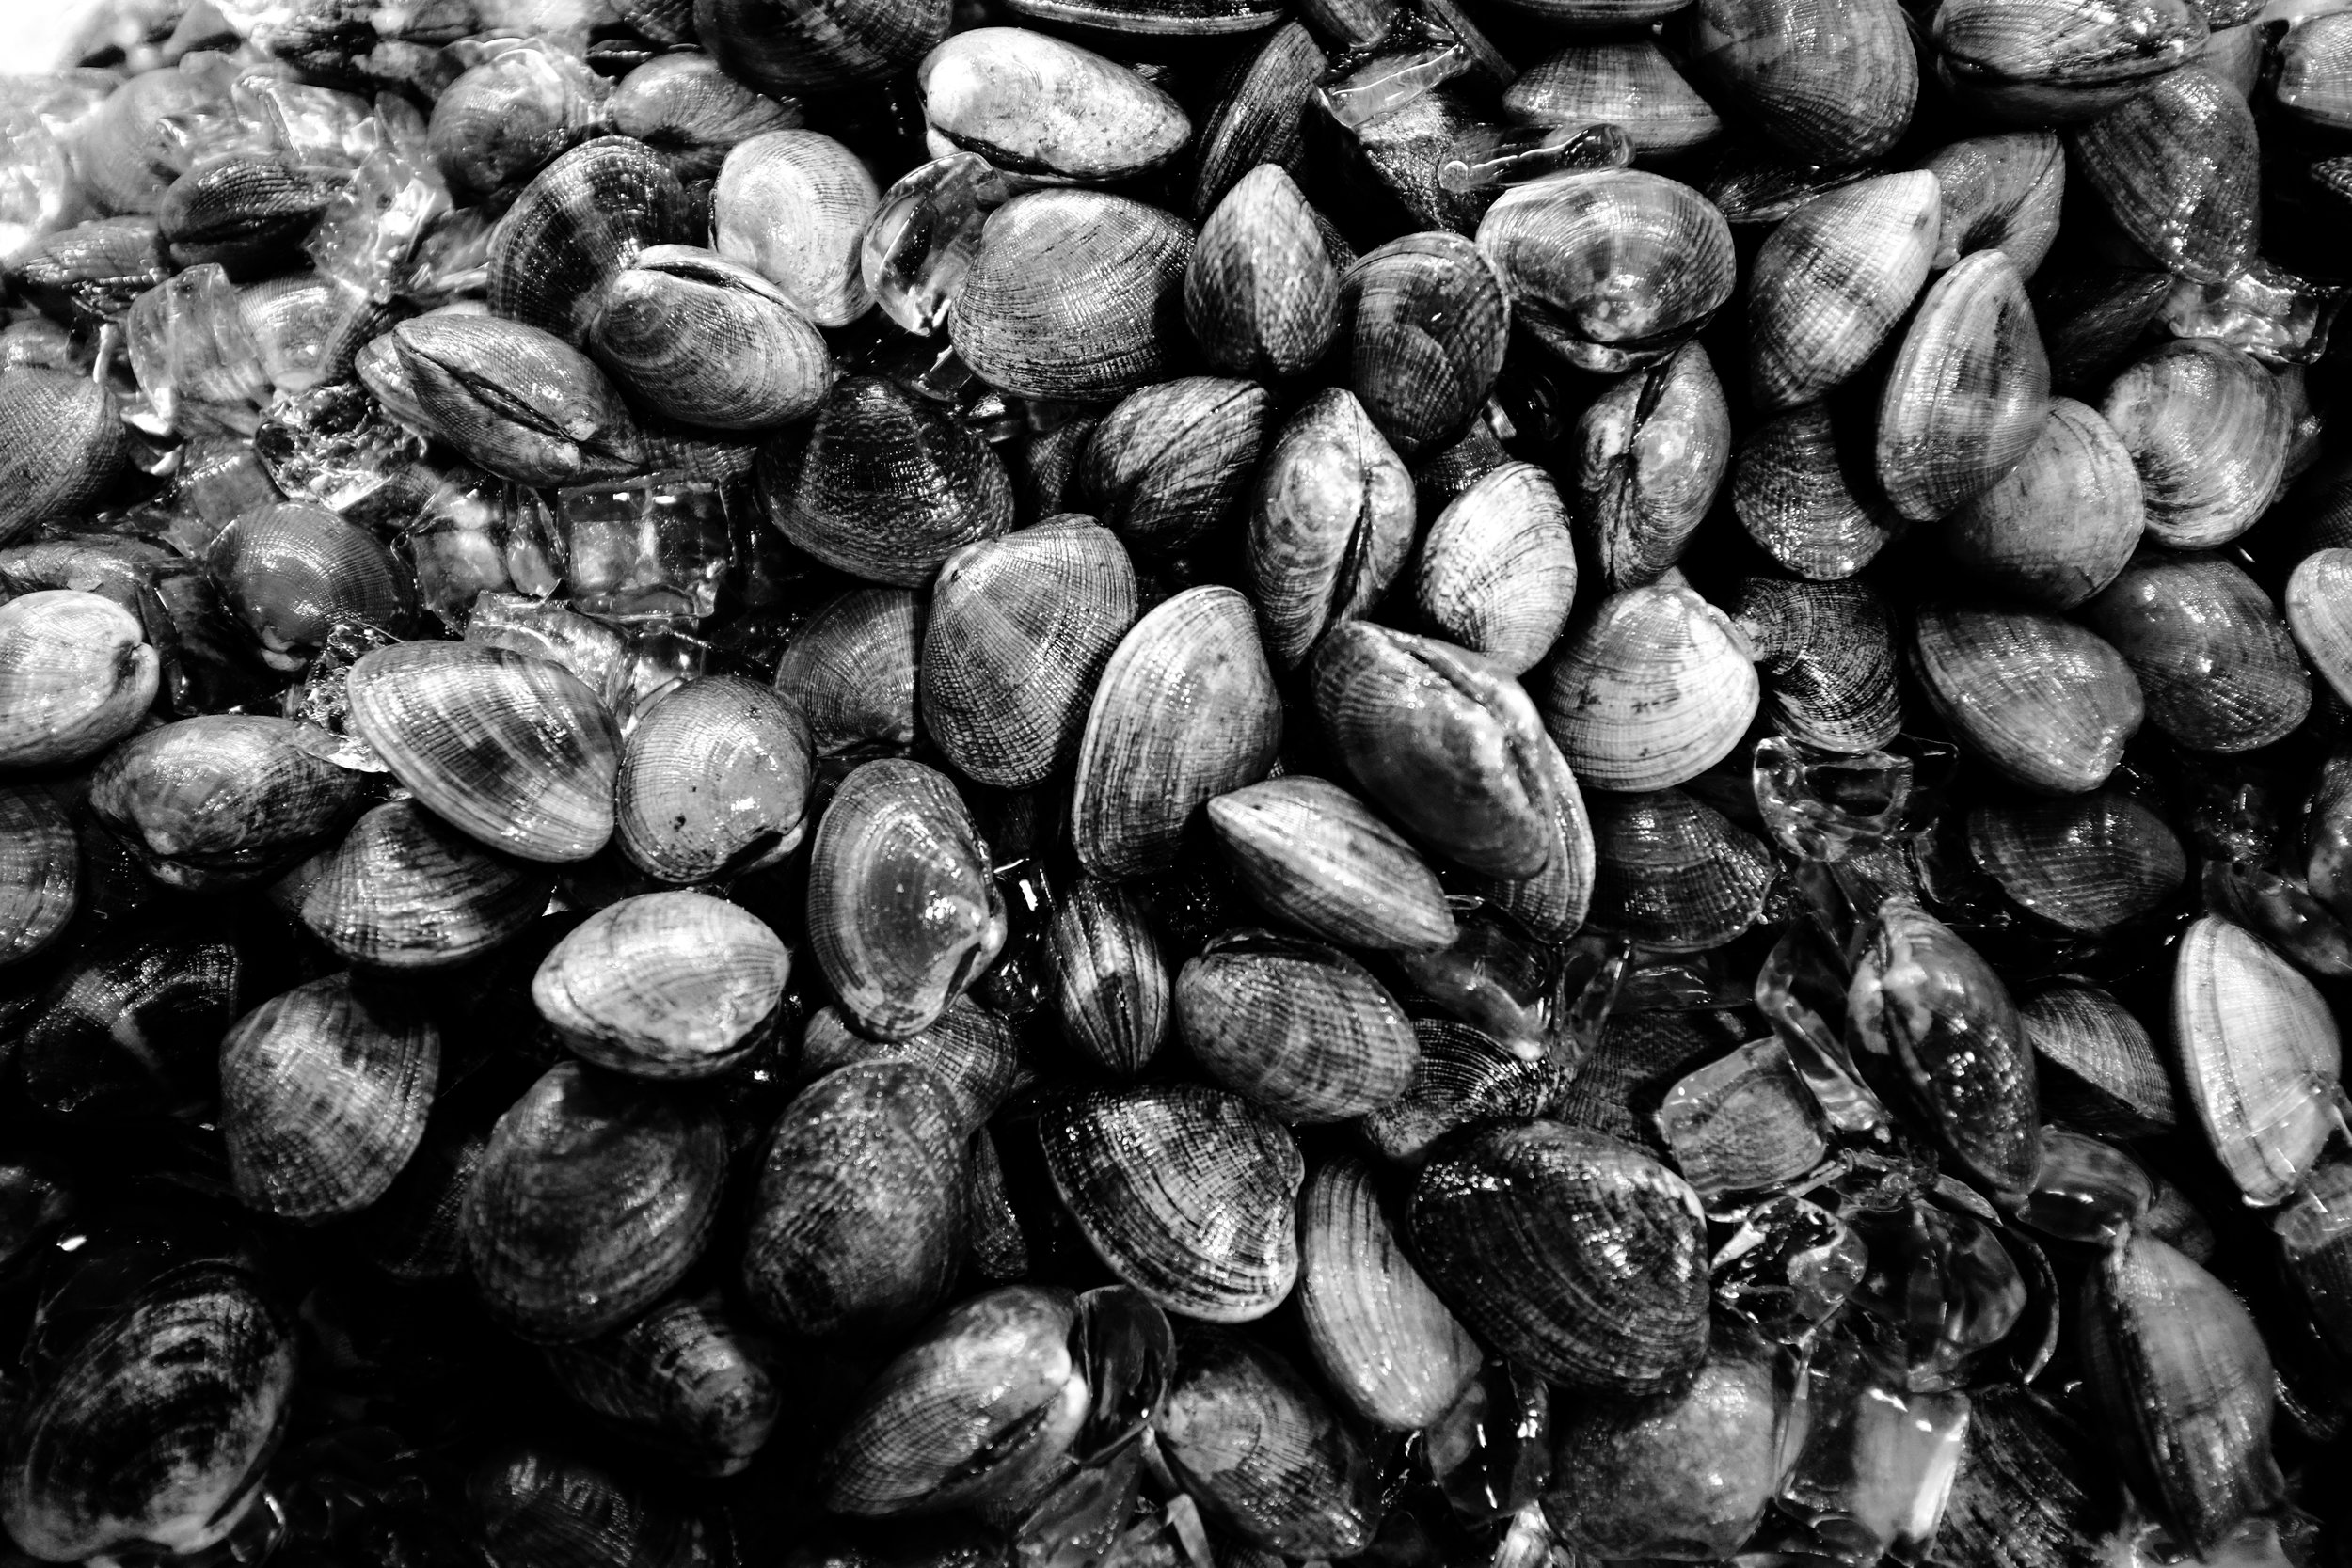 Mussels at the Chinatown market